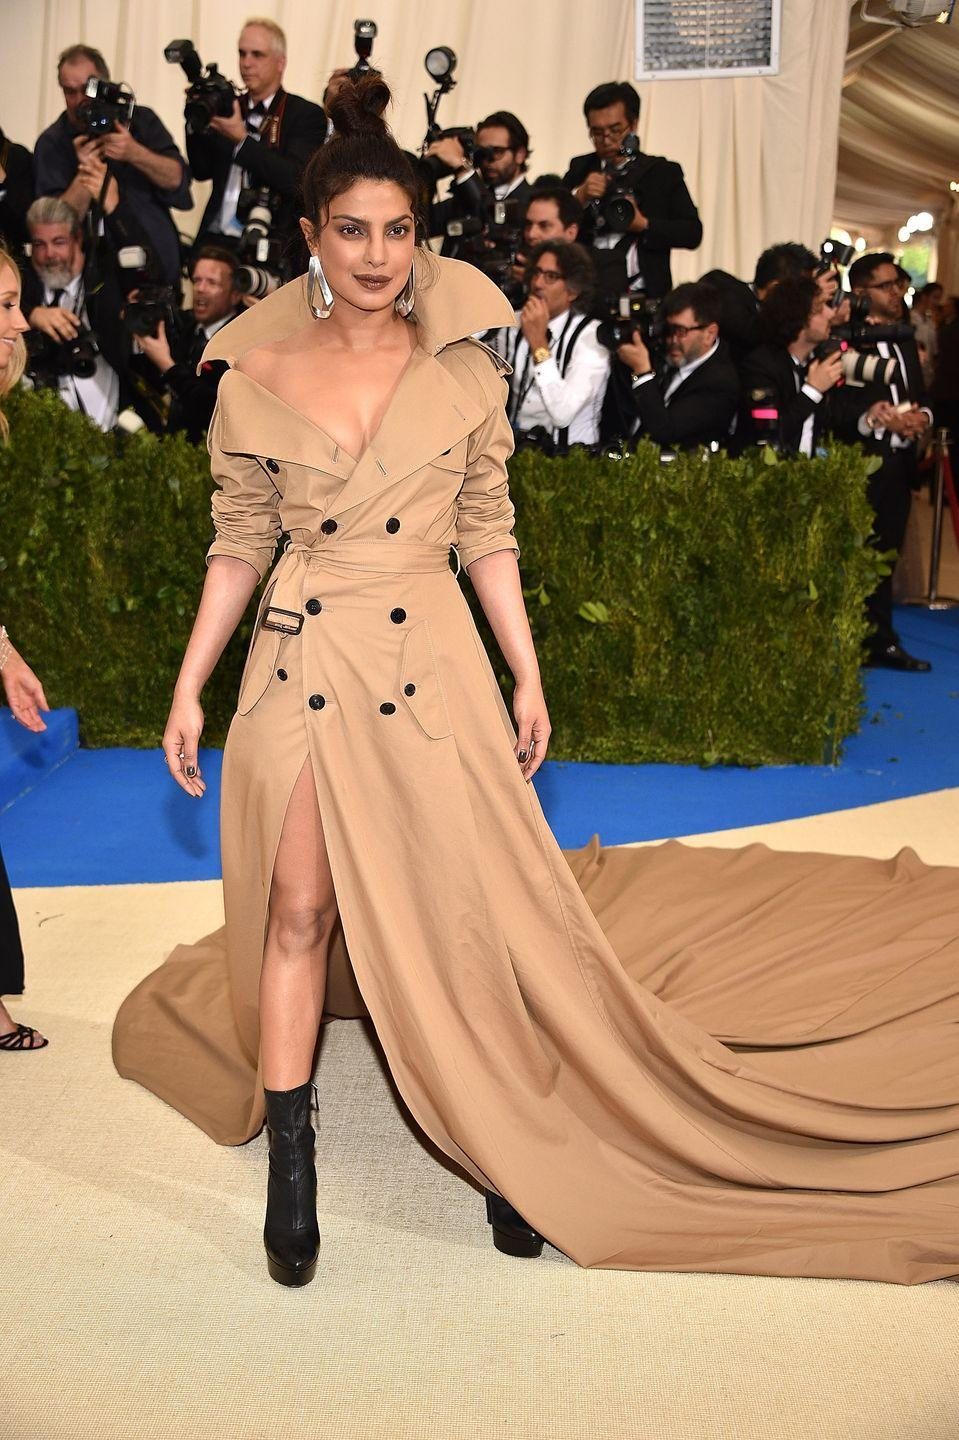 <p>It's hard to stand out from the crowd of dramatic dresses that flood the red carpet at the Met Gala, but Priyanka Chopra somehow managed it by opting for something slightly different in 2017. Channelling the theme of that year - paying tribute to Rei Kawakubo/Comme des Garçons - the actress stole the show in a Ralph Lauren trench coat dress featuring a cascading train. Now, of course, the moment is just as well known for being the night she first met her now-husband, Nick Jonas, who was also a guest of Ralph Lauren. A lucky dress indeed. </p>